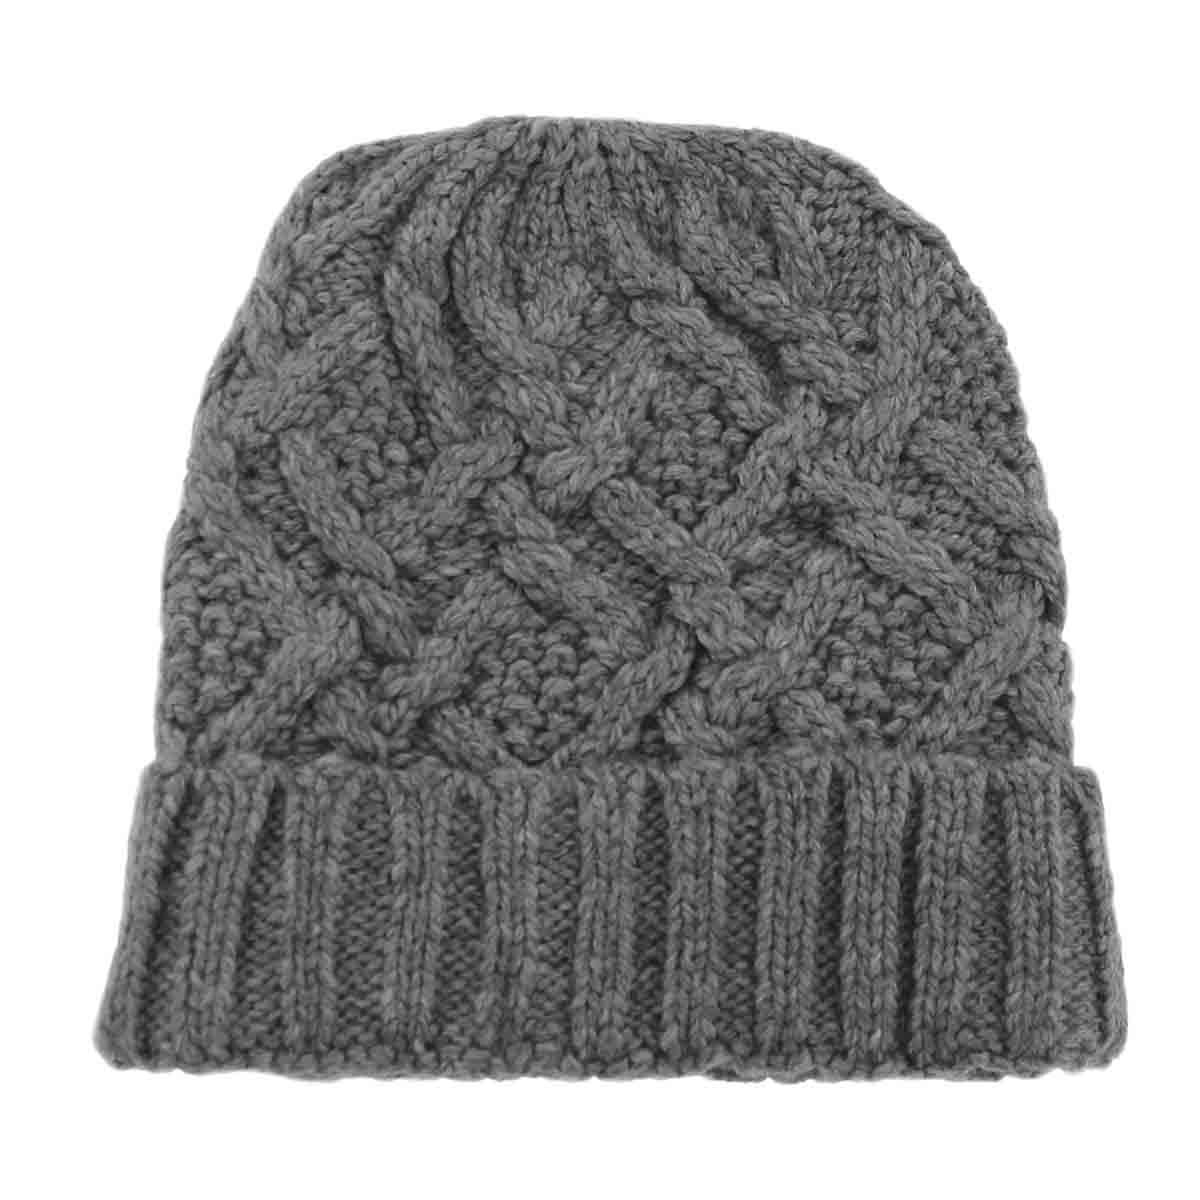 Lds Cable Knit grey lined hat